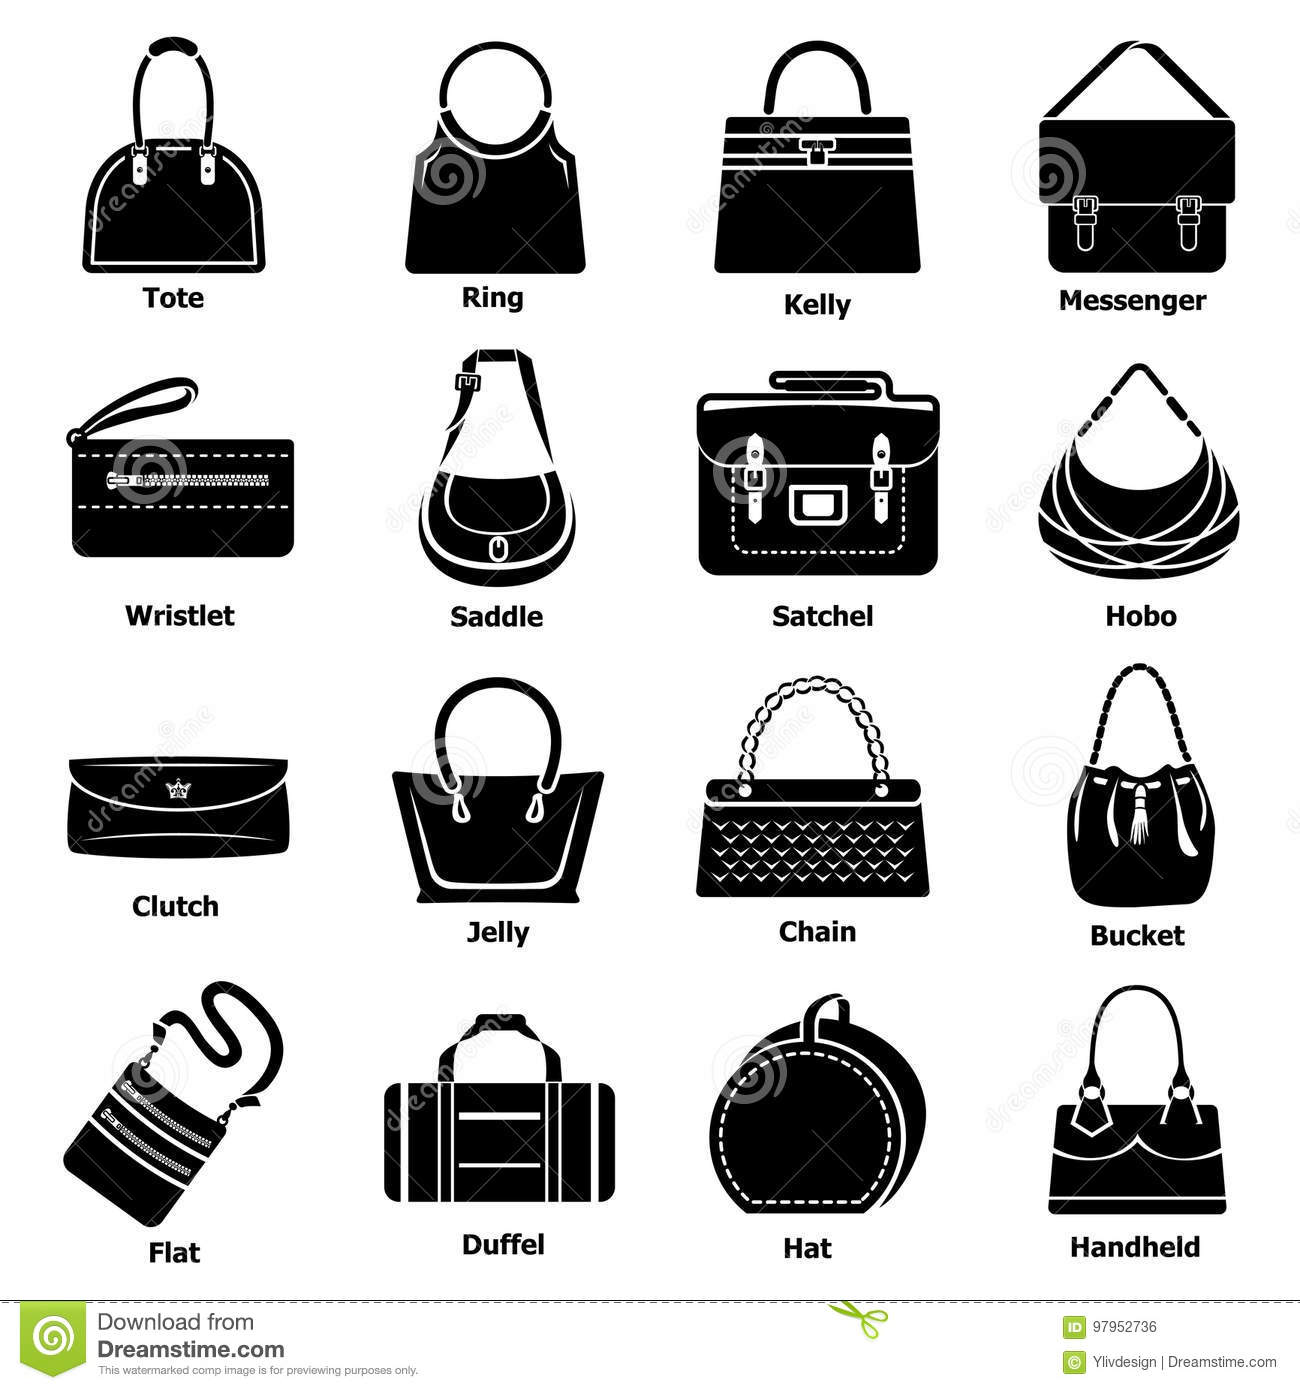 100827eae8 Woman bag types icons set. Simple illustration of 16 woman bag types vector  icons for web